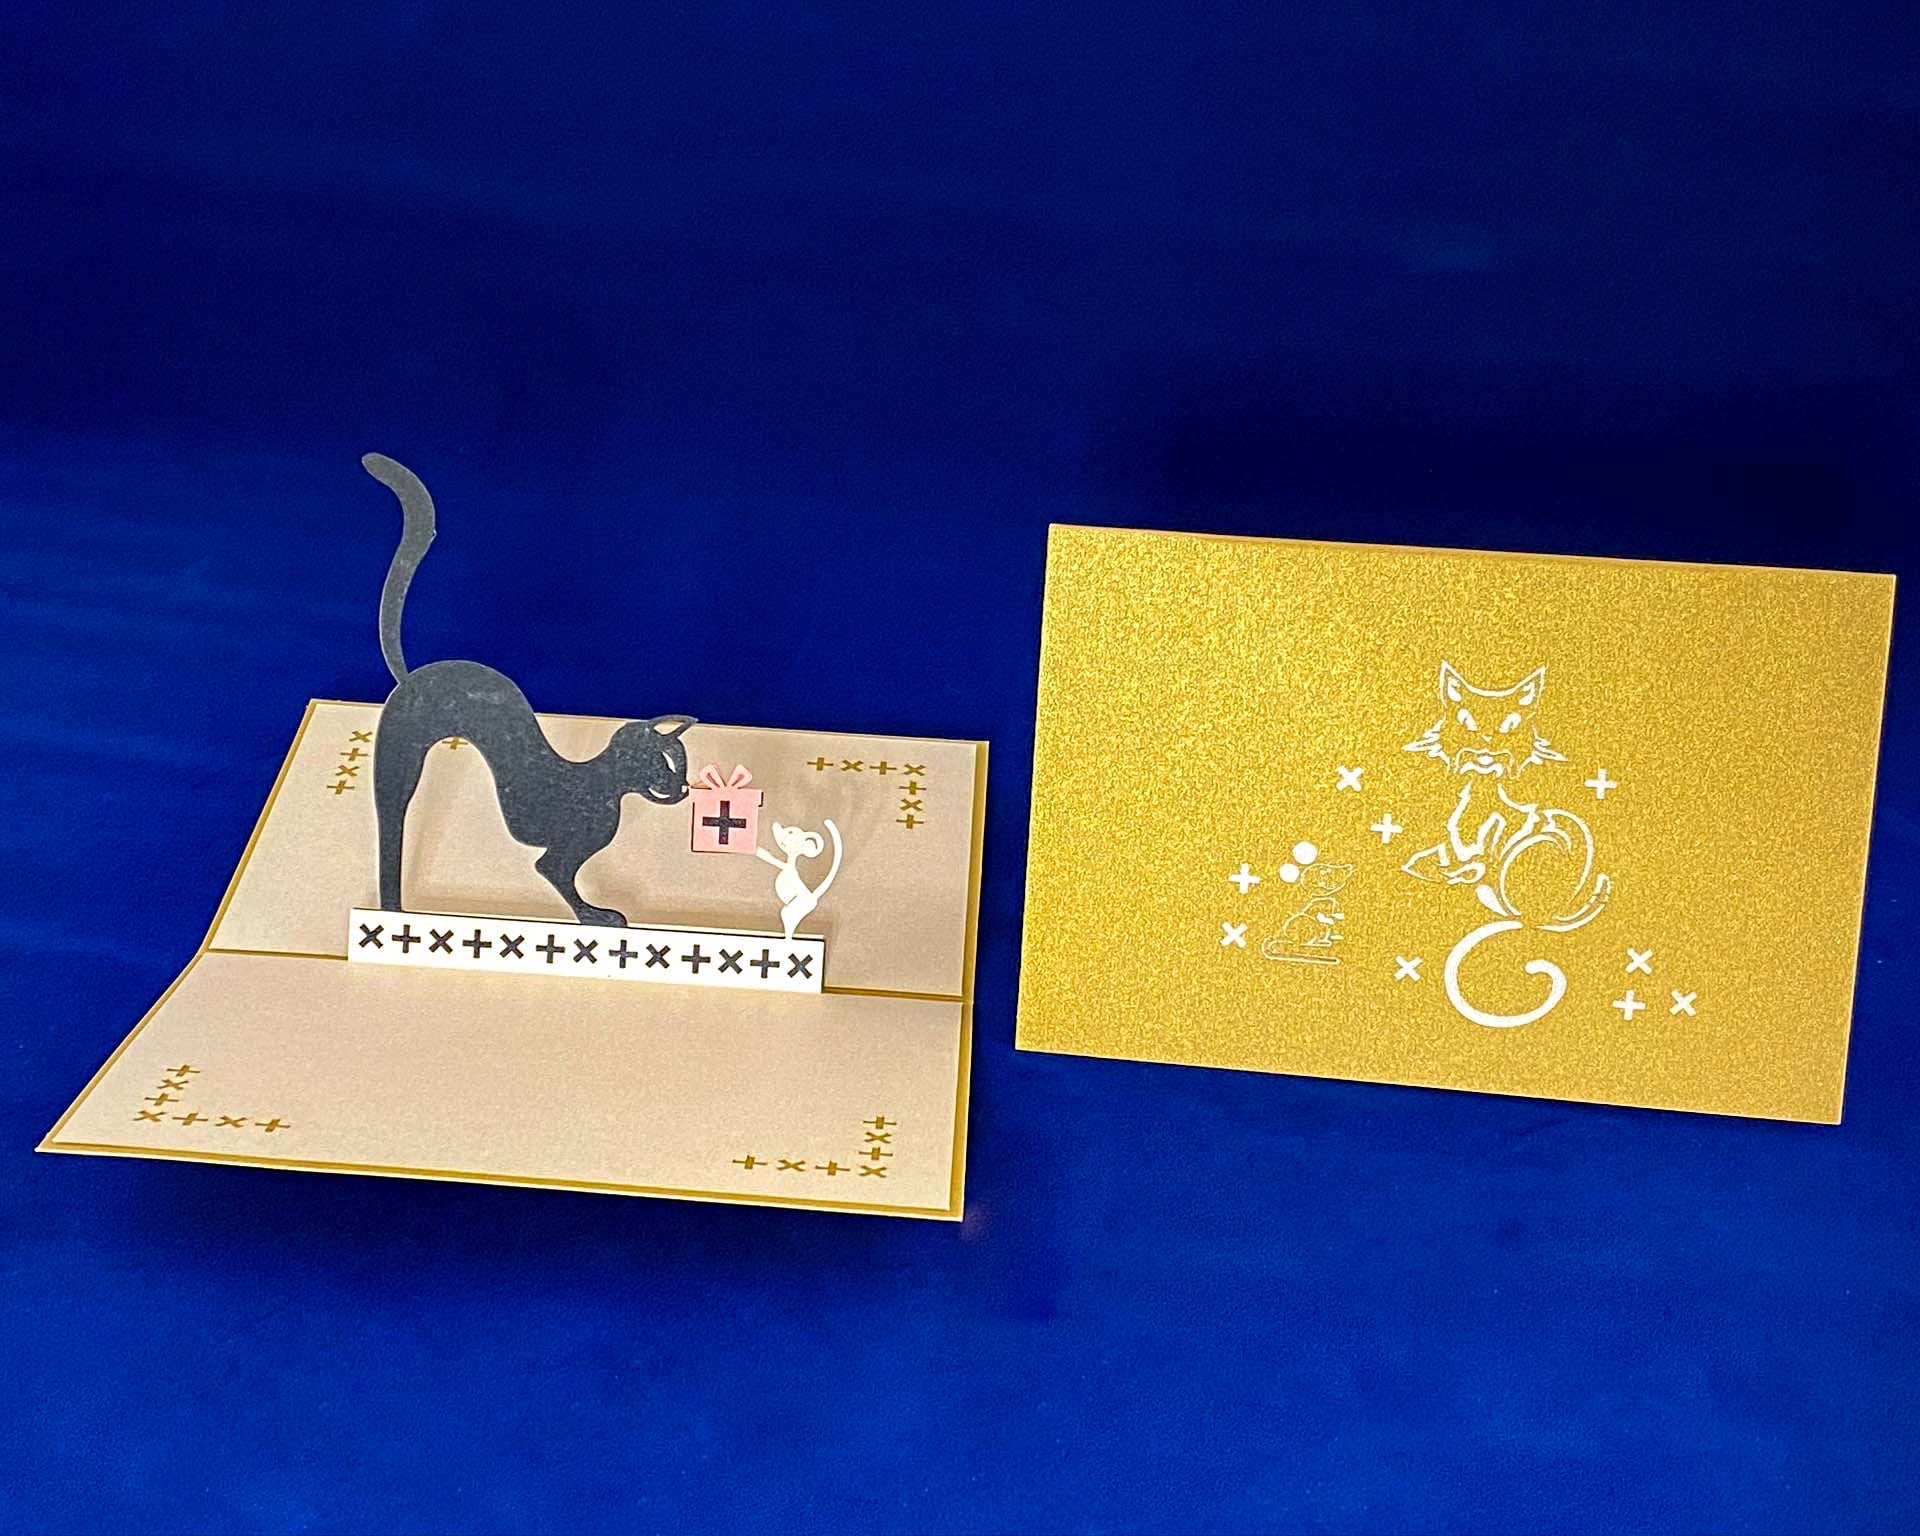 Tian's Gifts: Cat & Mouse 'Pop Up' Greetings Card